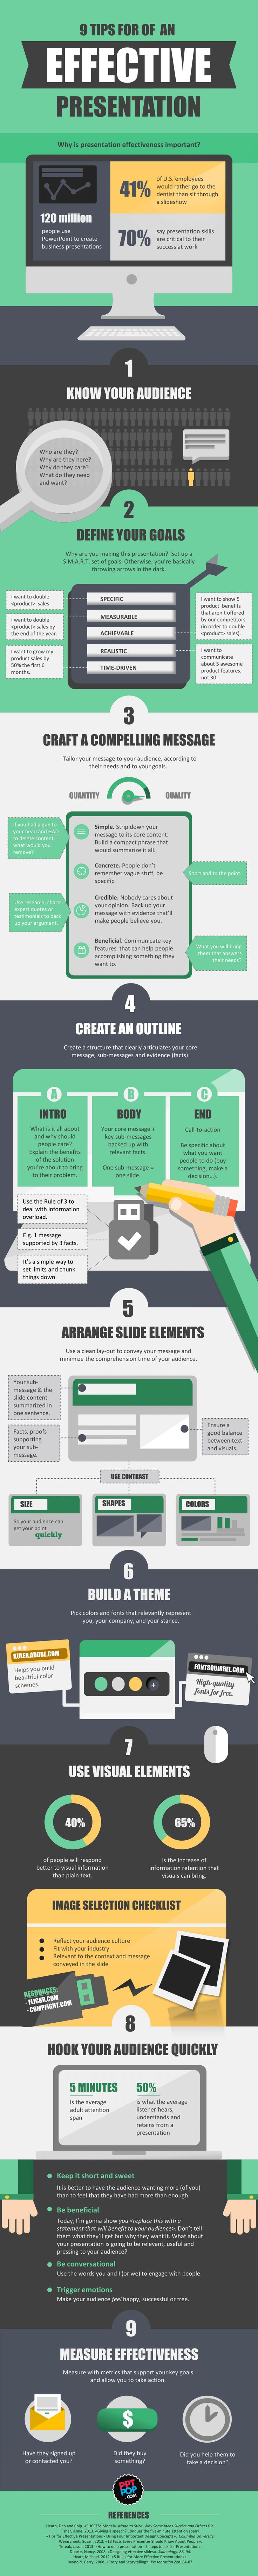 9 Actionable Presentation Tips That'll Make You Stand Out - Do you fancy an infographic? There are a lot of them online, but if you want your own please visit http://www.linfografico.com/prezzi/ Online girano molte infografiche, se ne vuoi realizzare una tutta tua visita http://www.linfografico.com/prezzi/